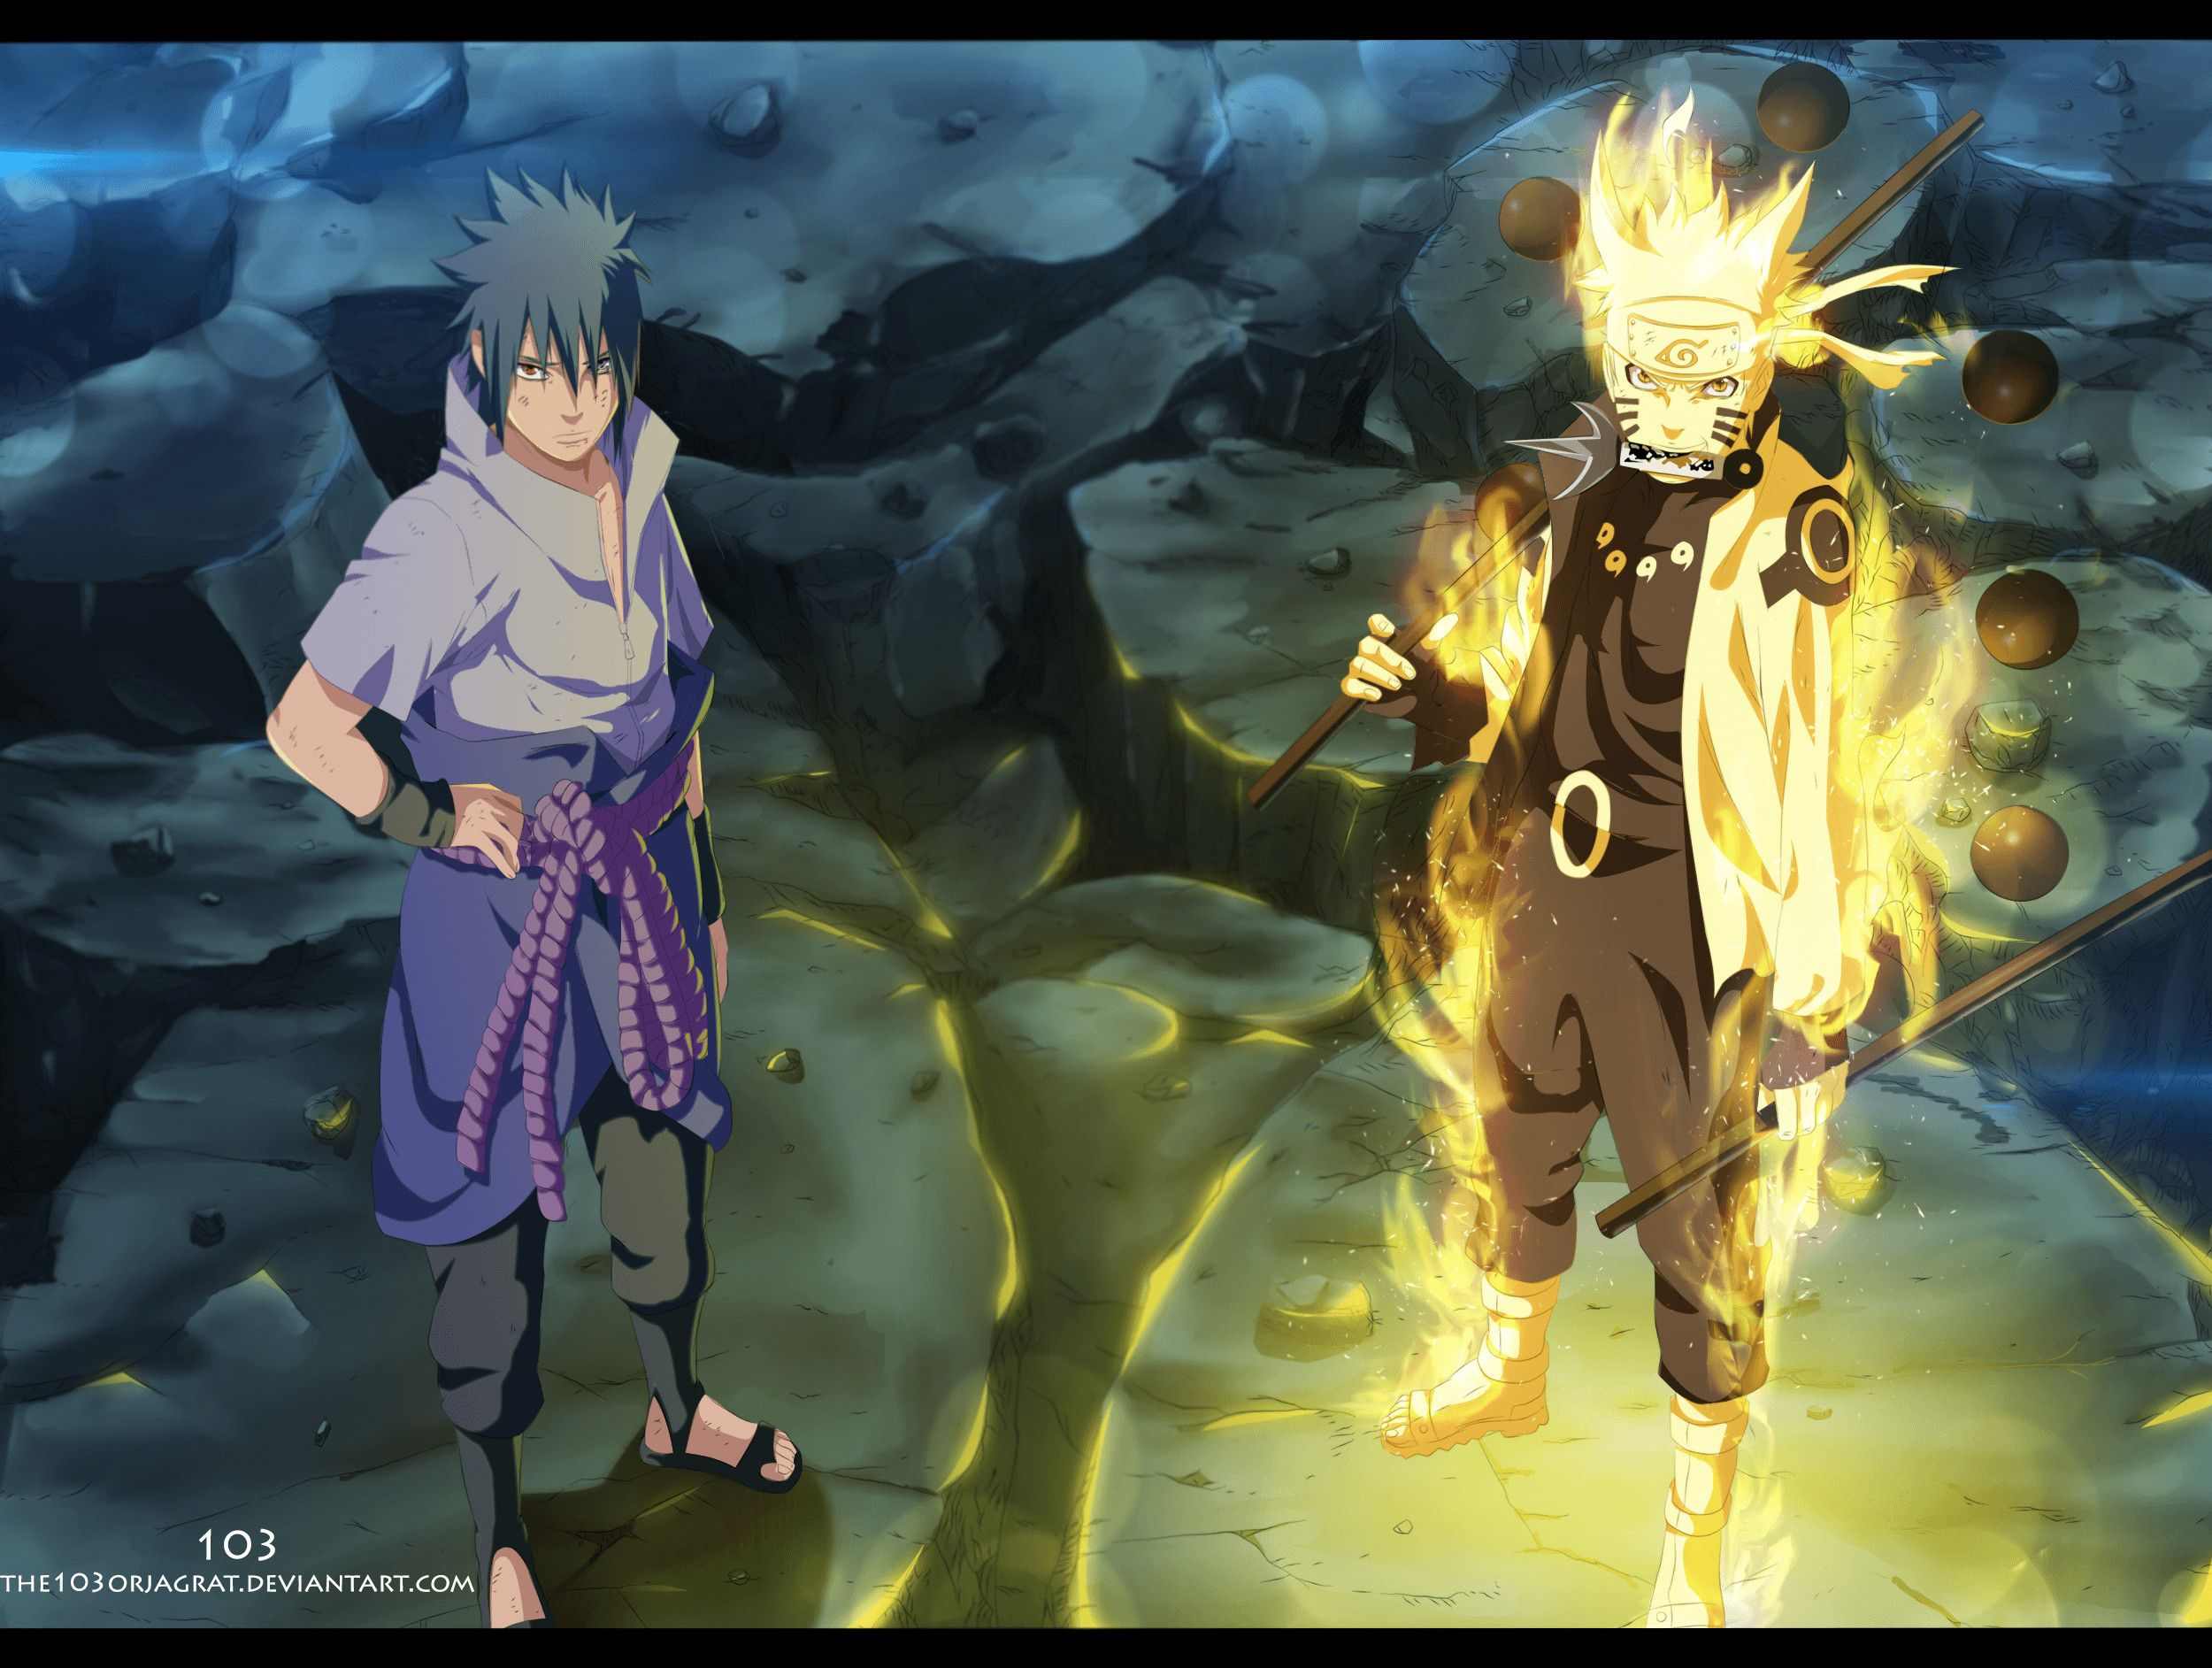 Naruto Six Paths Wallpapers Top Free Naruto Six Paths Backgrounds Wallpaperaccess The great collection of naruto six paths wallpapers for desktop, laptop and mobiles. naruto six paths wallpapers top free